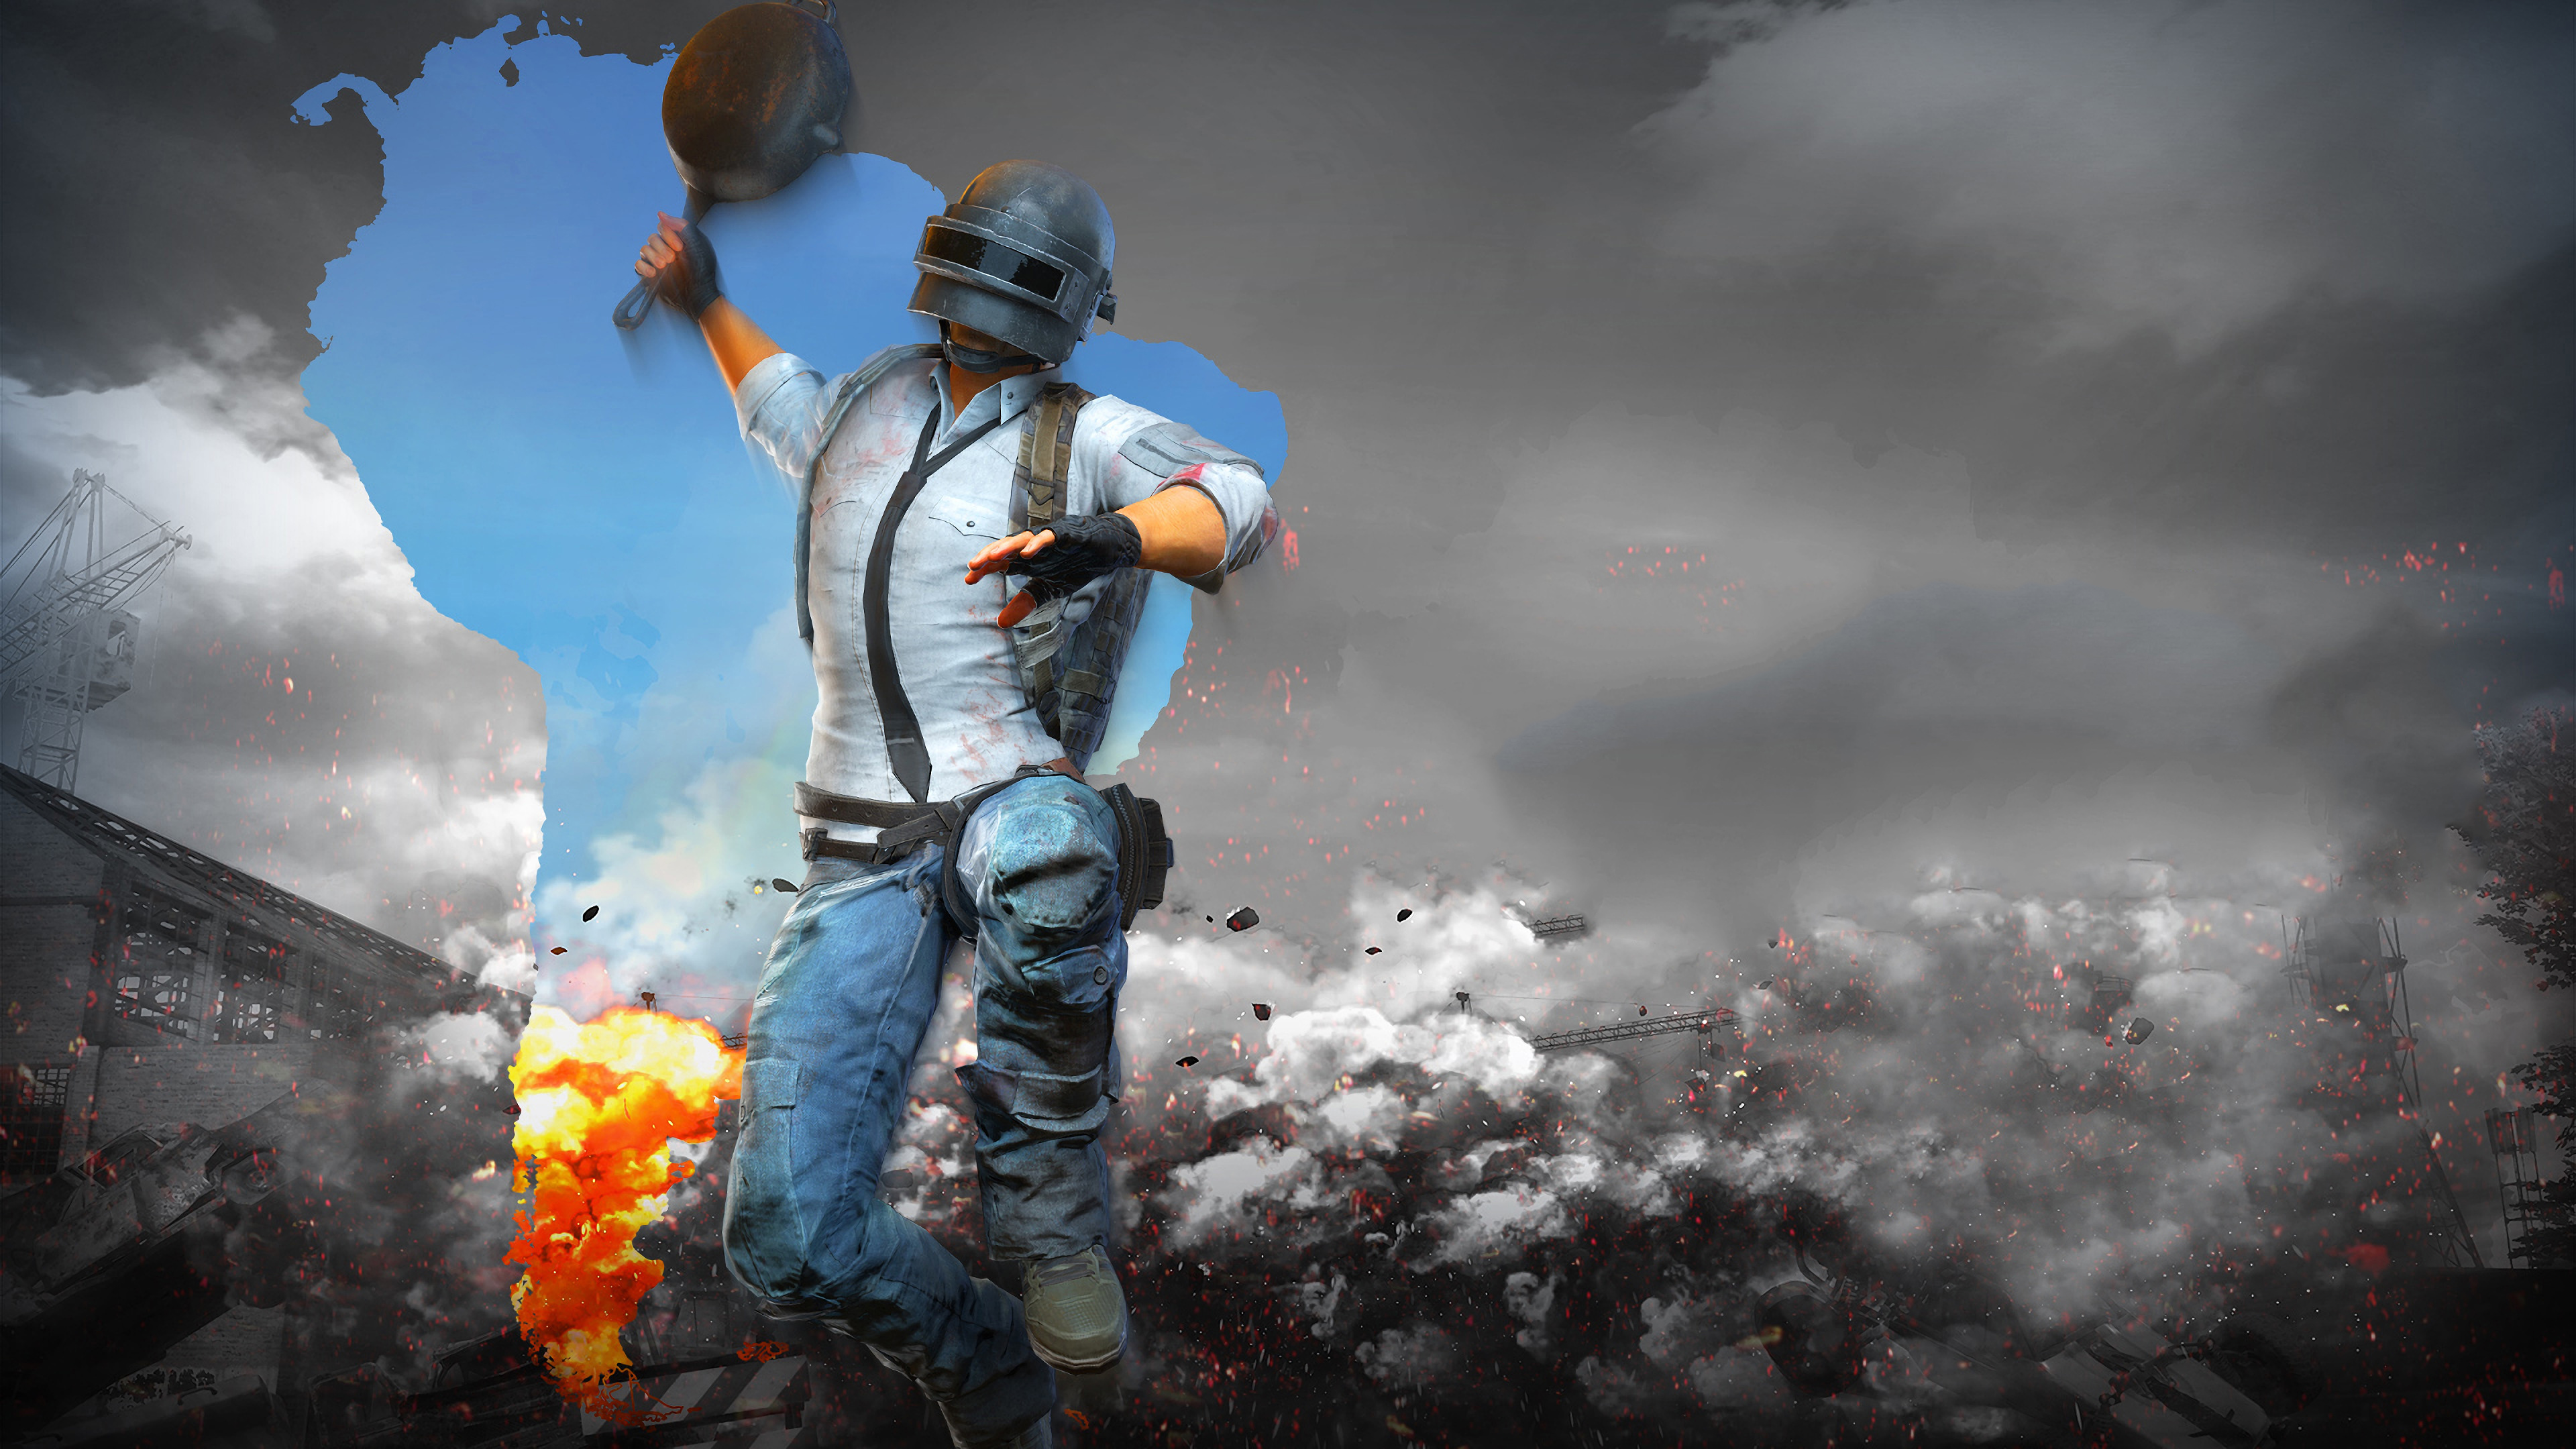 Pubg Mobile Full Screen Wallpapers: PUBG Helmet Man With Pan 4k, HD Games, 4k Wallpapers